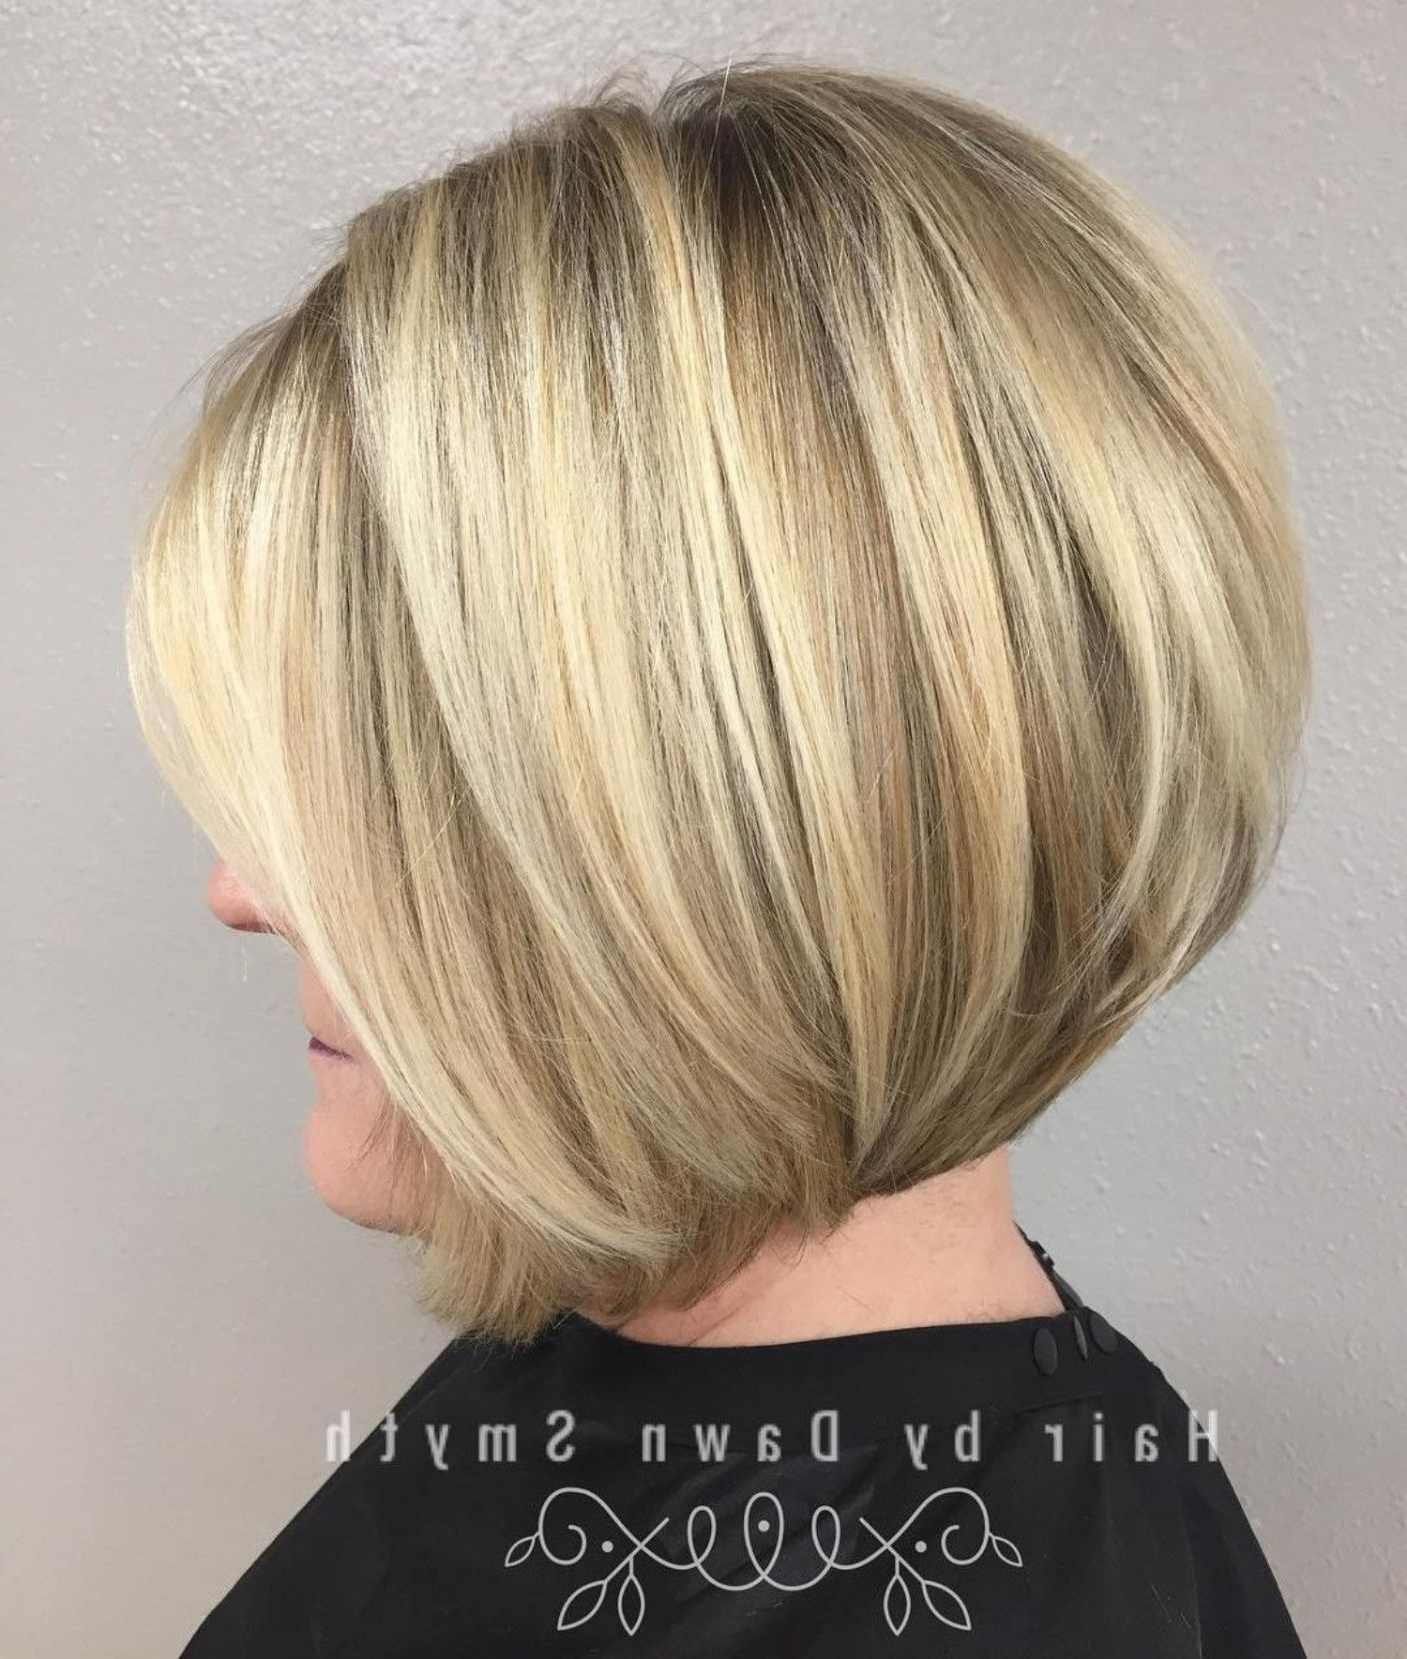 90 Classy And Simple Short Hairstyles For Women Over 50 In 2018 Intended For Rounded Bob Hairstyles With Stacked Nape (View 12 of 20)